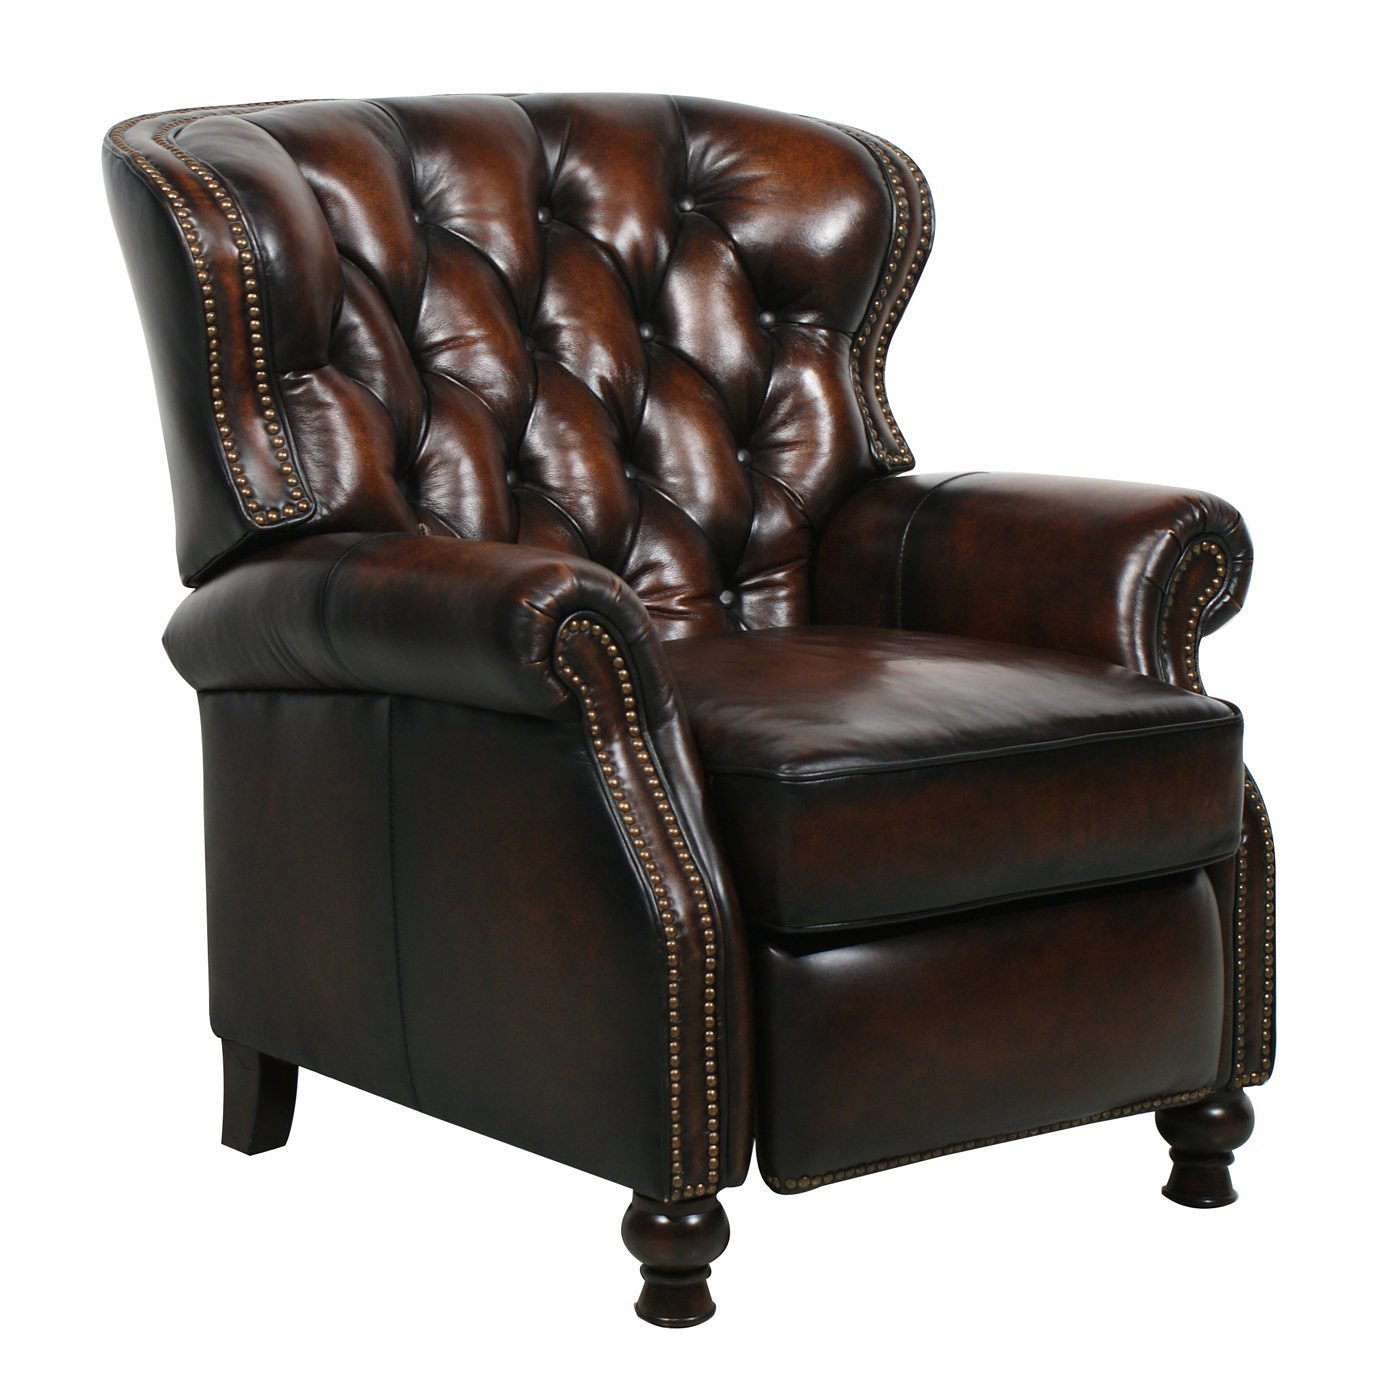 best recliner chairs canada hanging chair kohls barcalounger presidential ii leather